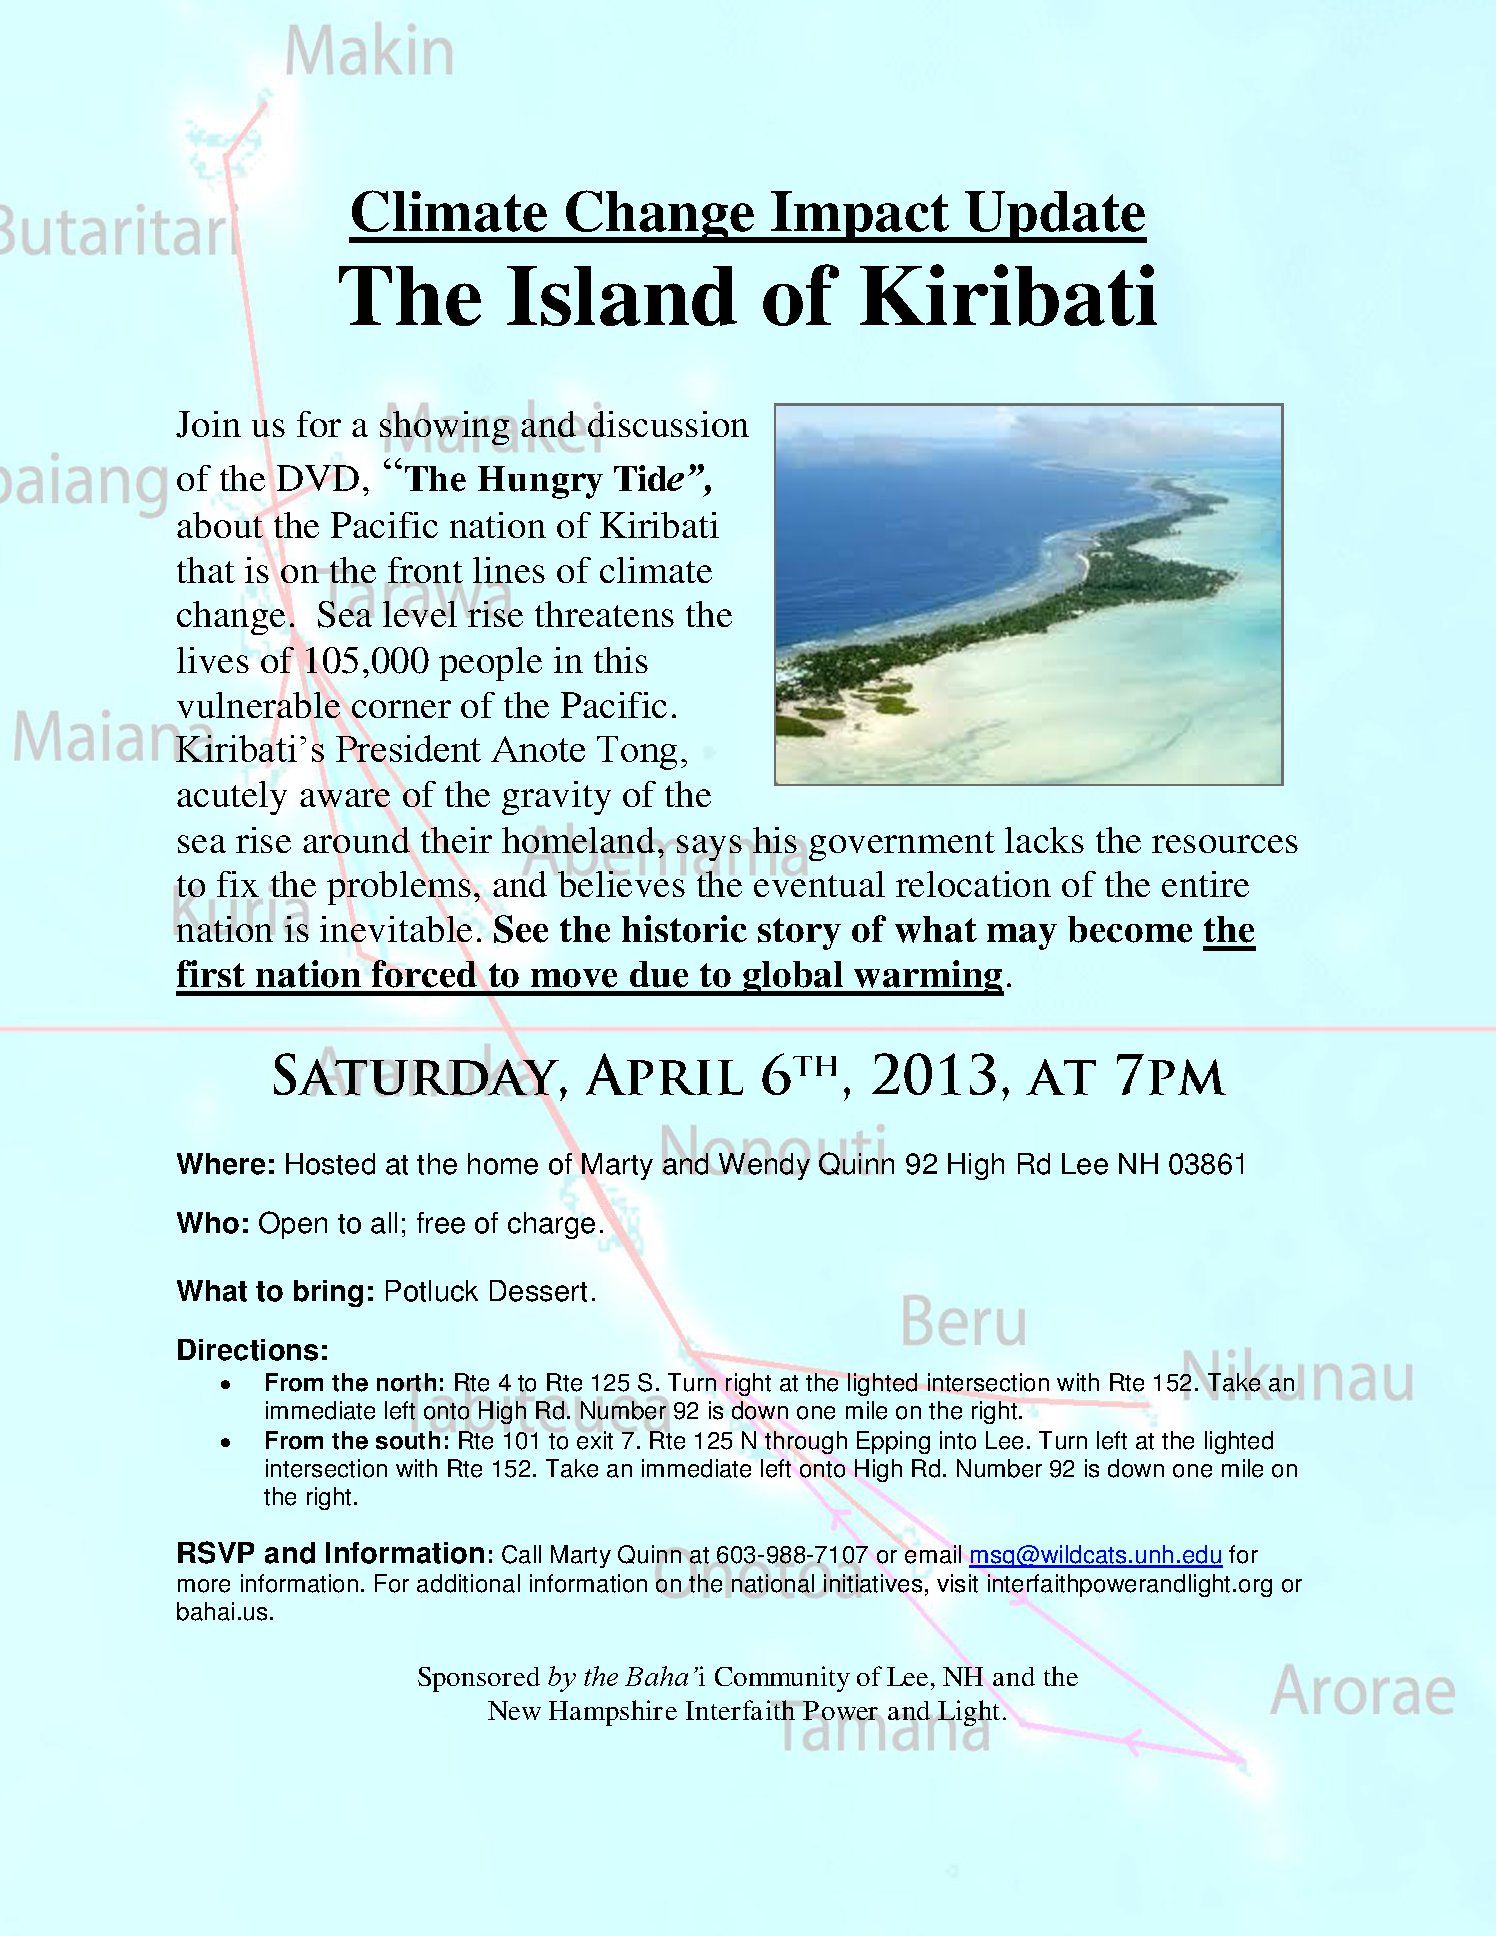 Climate Change Update: The Island Of Kiribati by marty